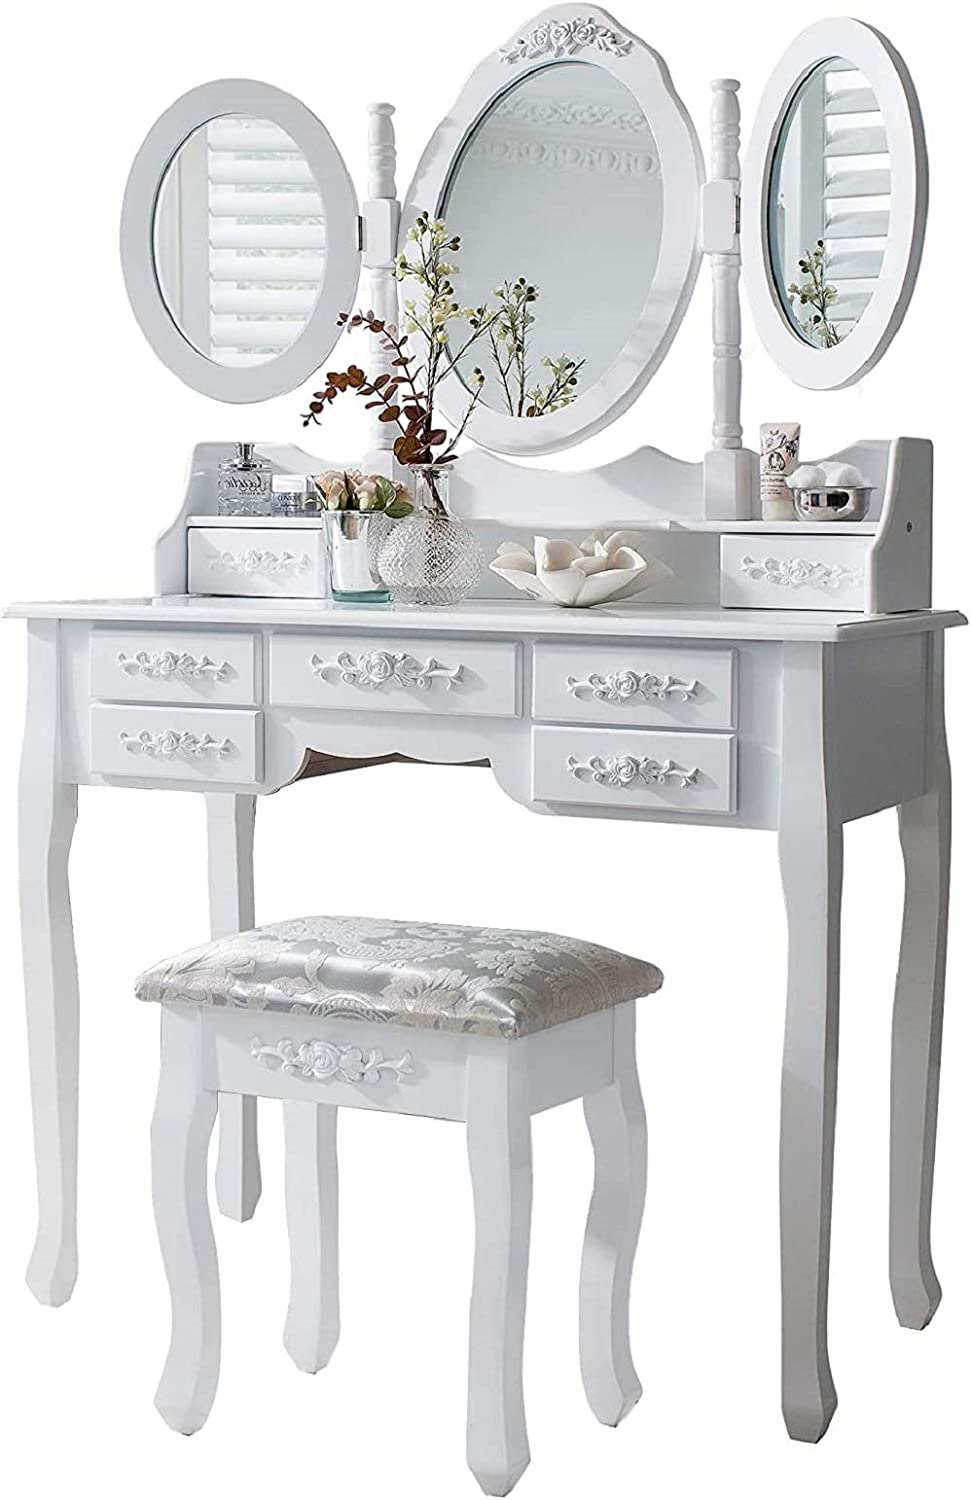 145cm x Merix White Dressing Table Wooden Dresser Organiser Furniture for Makeup /& Beauty Products - D 90cm x 7 Drawers with Handles Vintage Vanity Desk Set with Stool W 3 Mirrors 40cm H